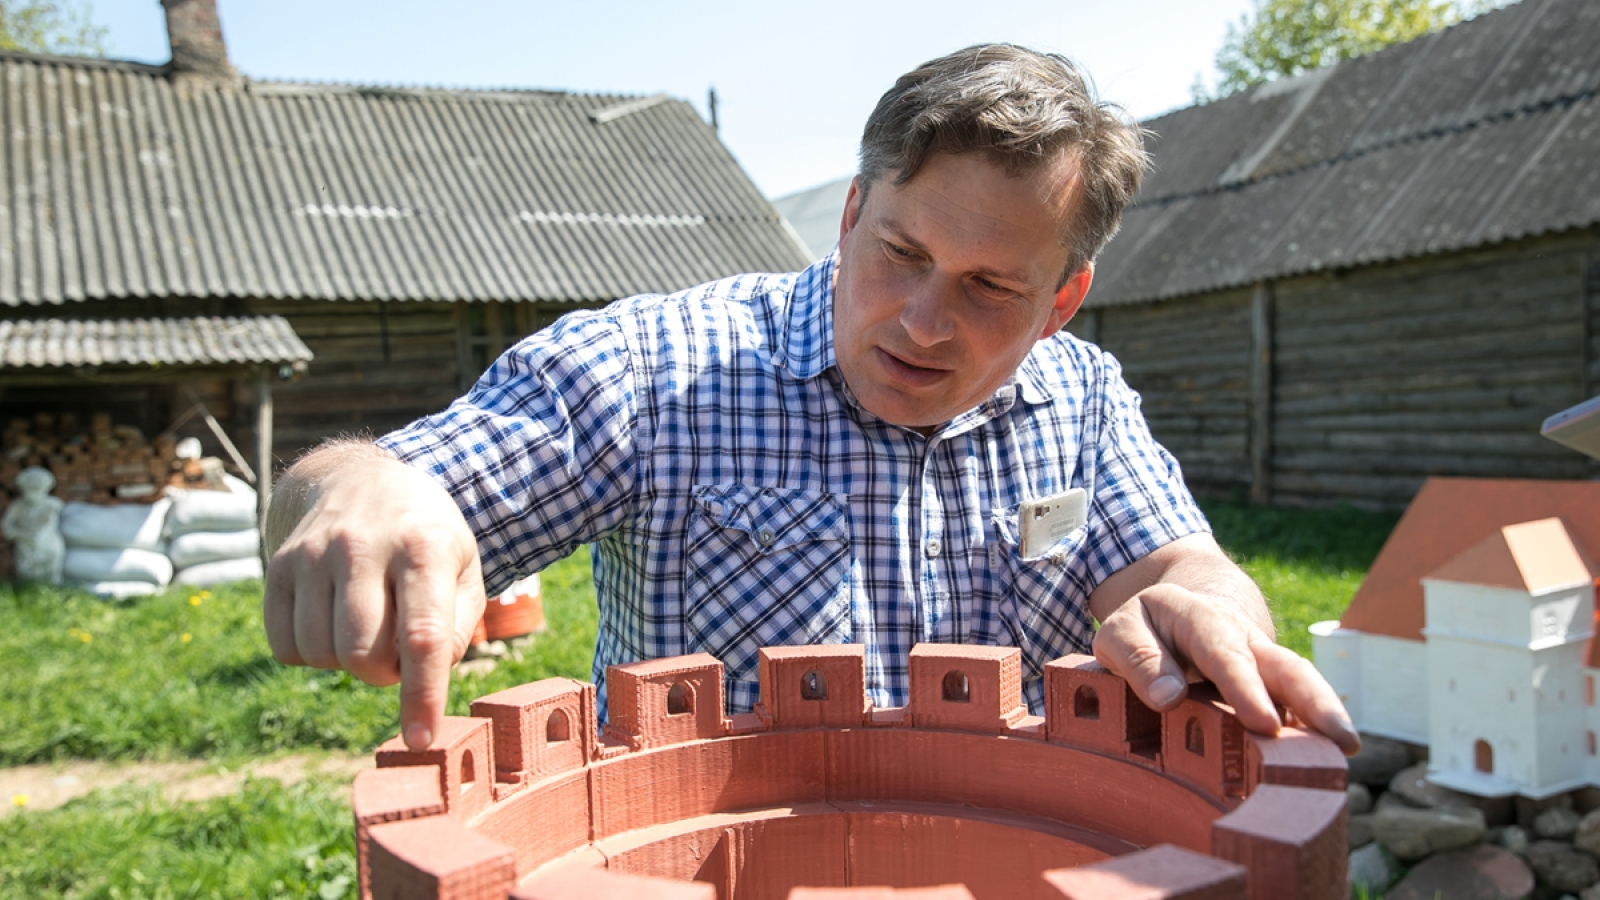 Aleksandr Varykish set up a park with 3D models of castles, palaces and other attractions